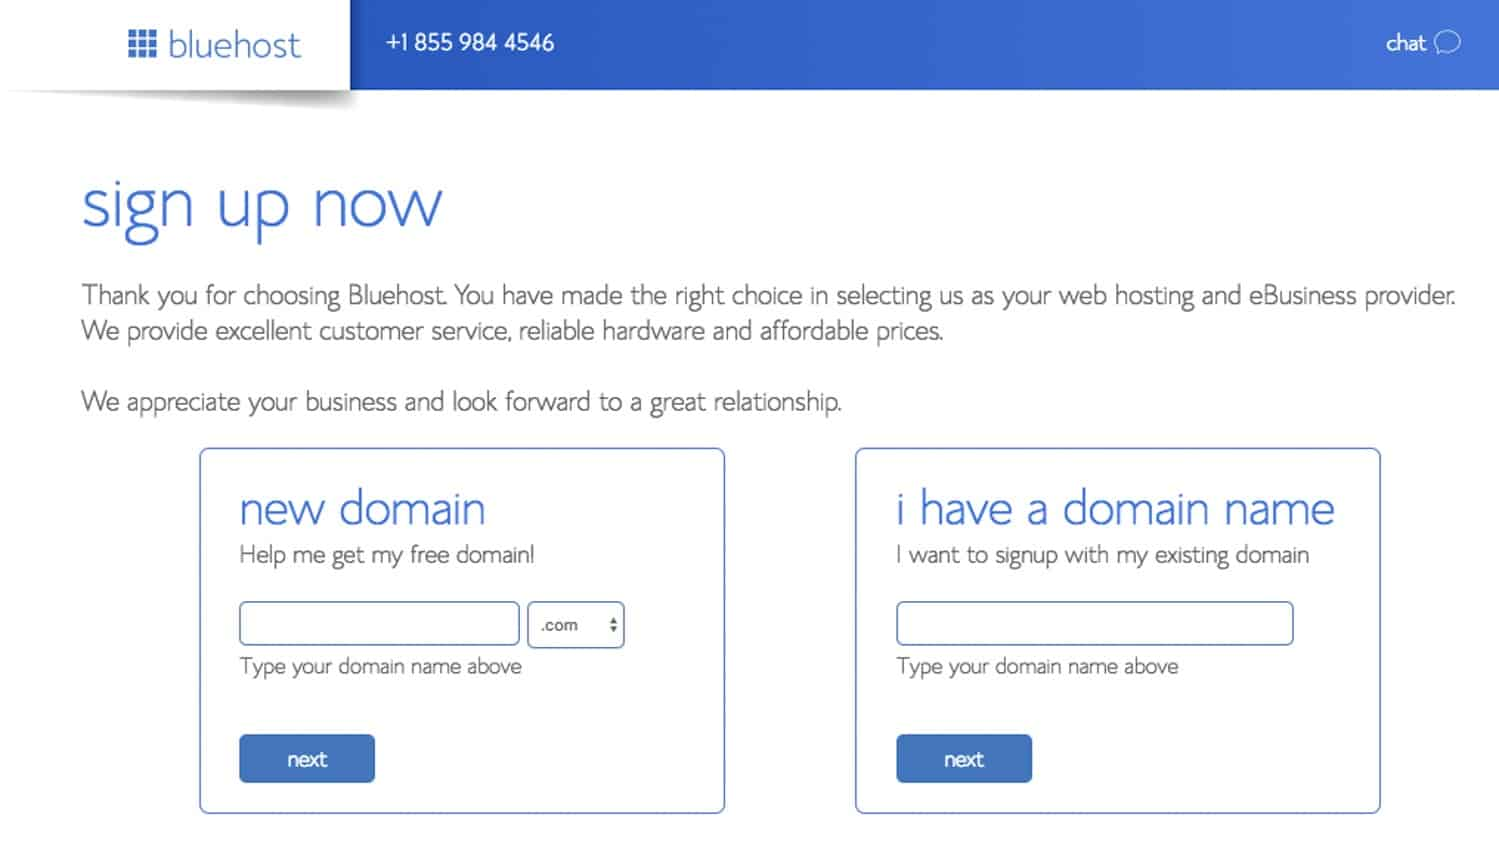 Bluehost sign up screen for domain name